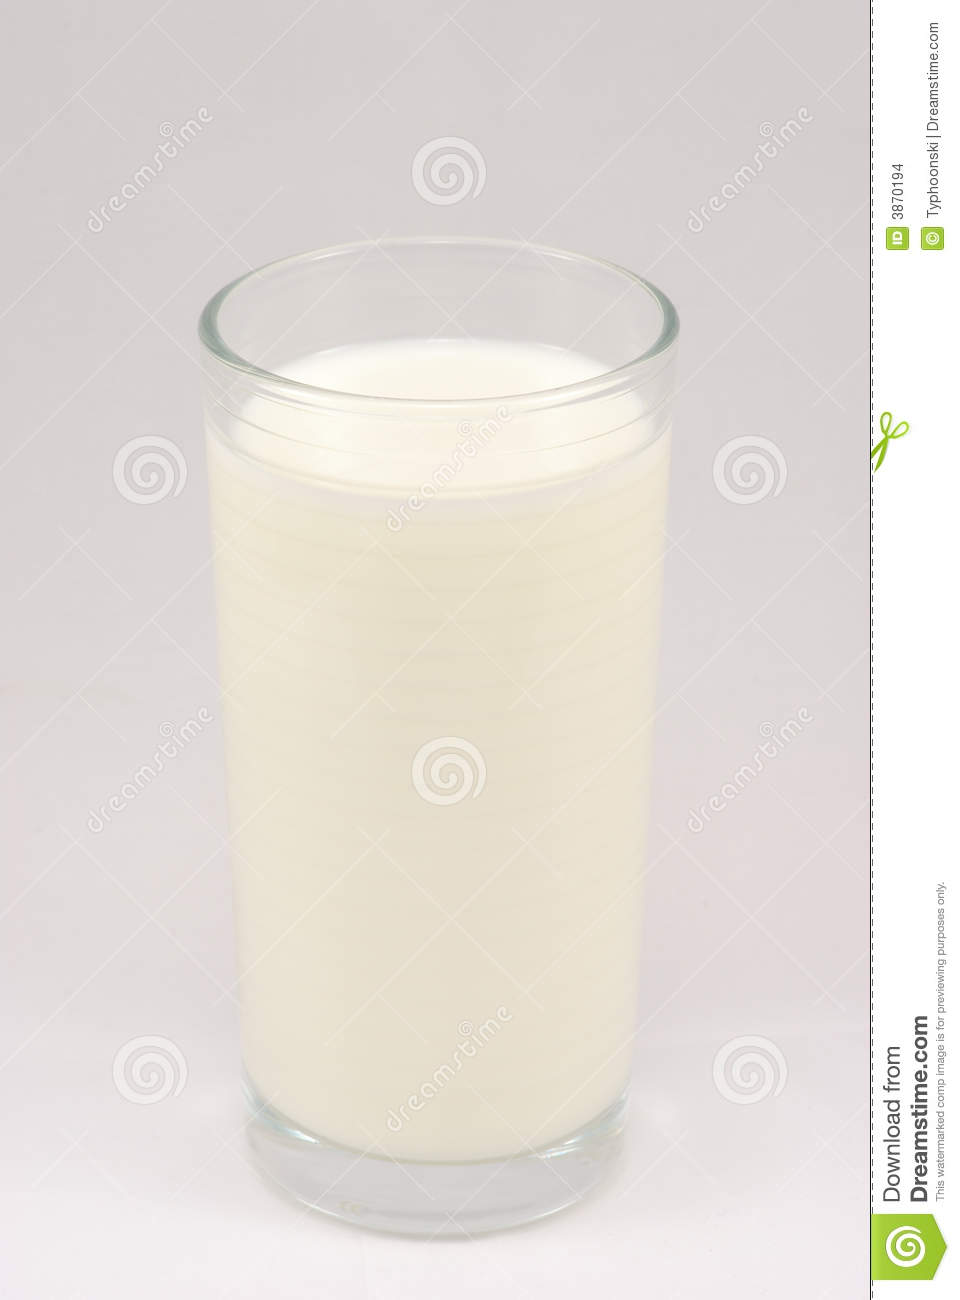 Glass Of Cold Milk Stock Images - Image: 3870194